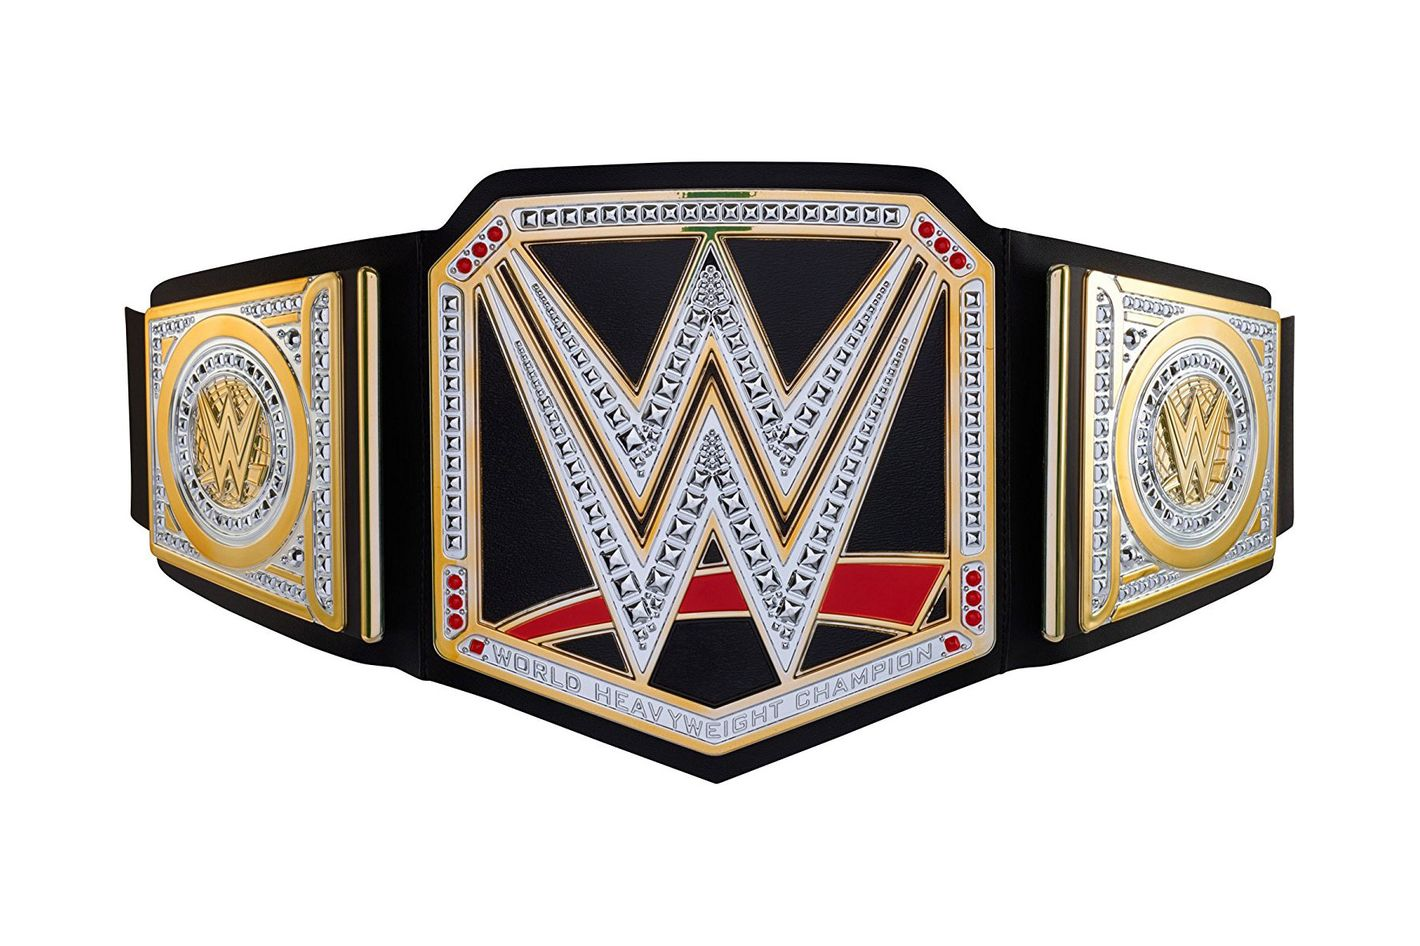 WWE World Heavyweight Championship Belt FFP